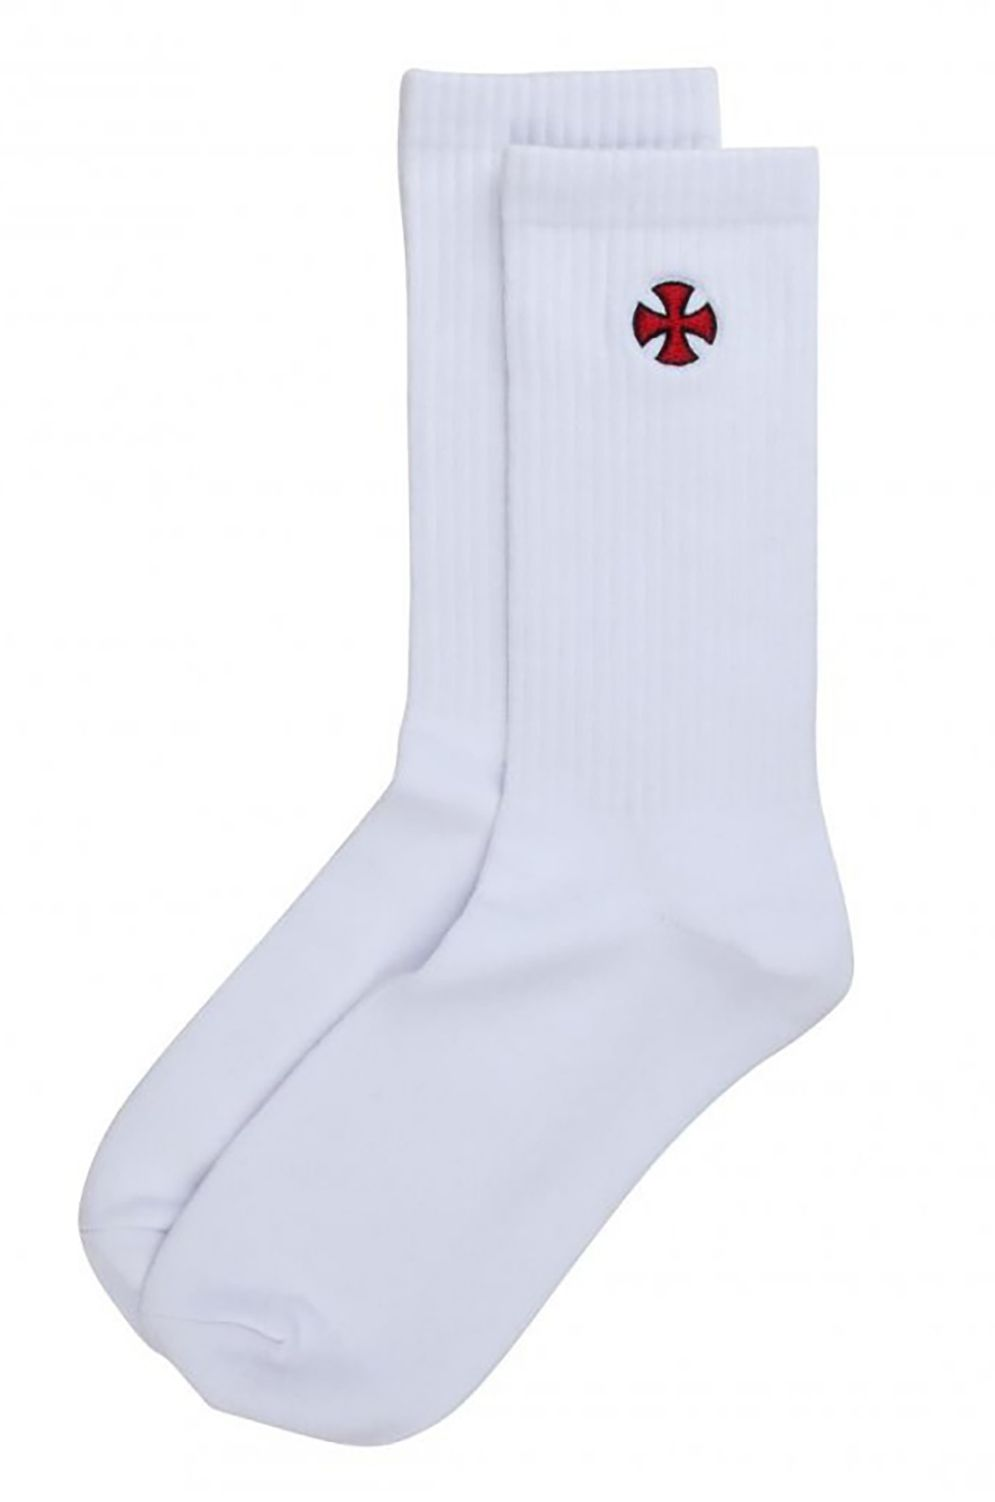 Meias Independent CROSS White